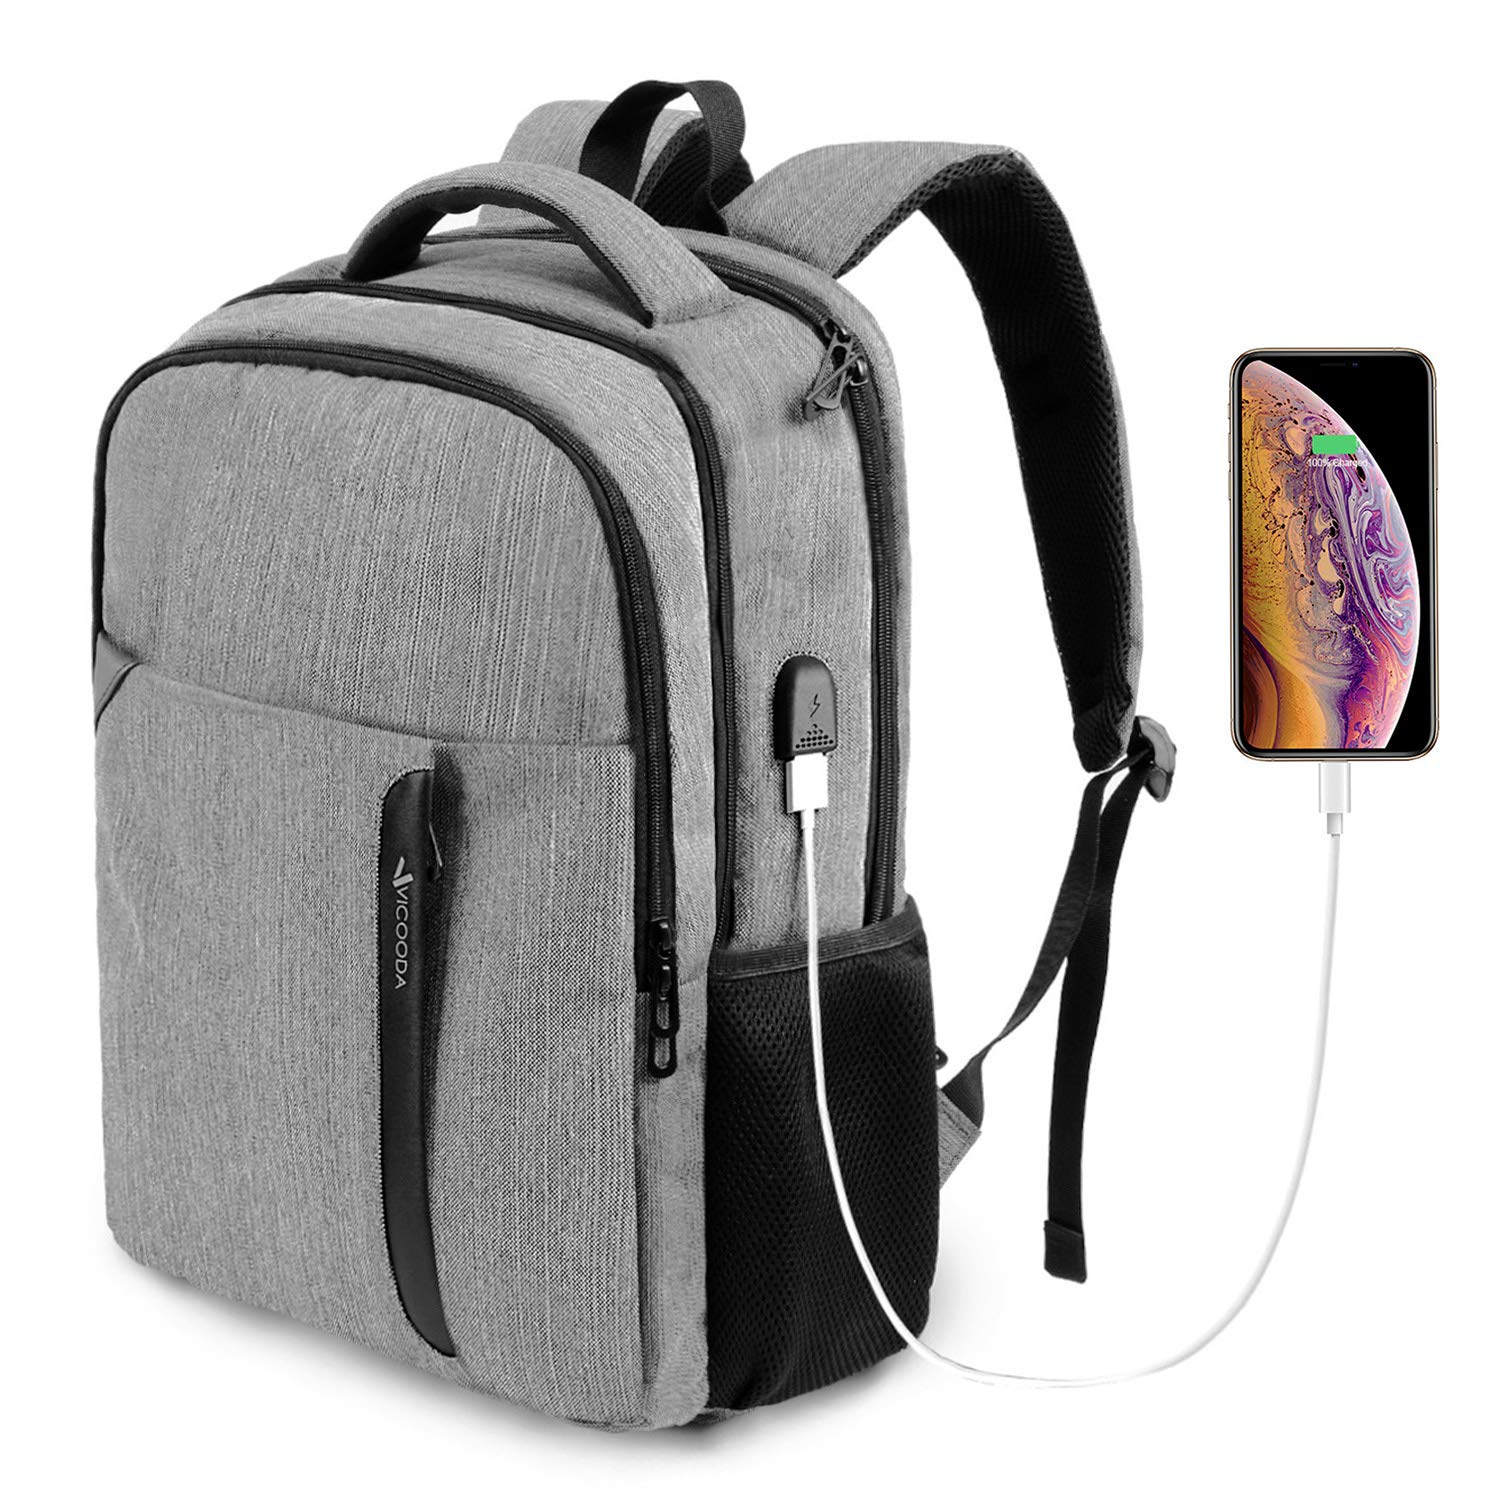 Laptop Backpack, Business Anti Theft Waterproof Travel Backpack with USB Charging Port for College School Computer Bag for Men Women Fits 15.6-Inch Laptop Notebook Grey